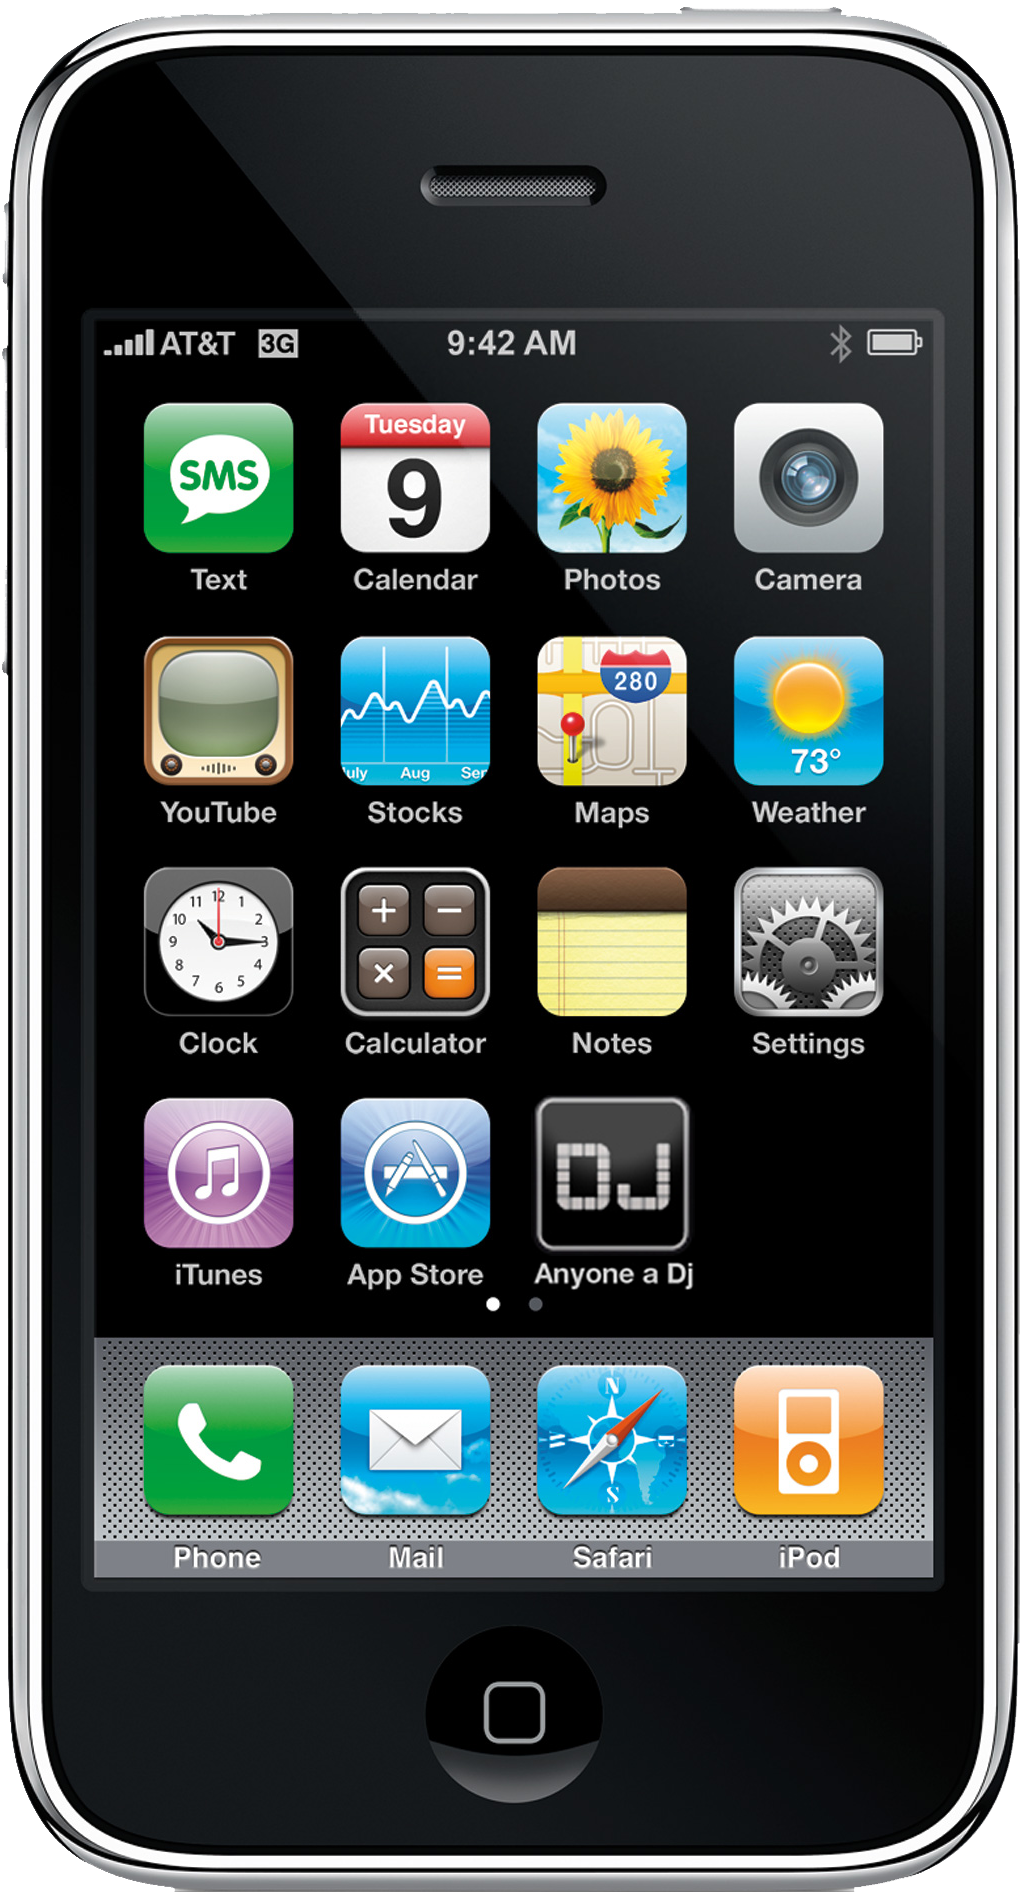 Iphone Apple PNG Image Iphone, Iphone 5s, Apple